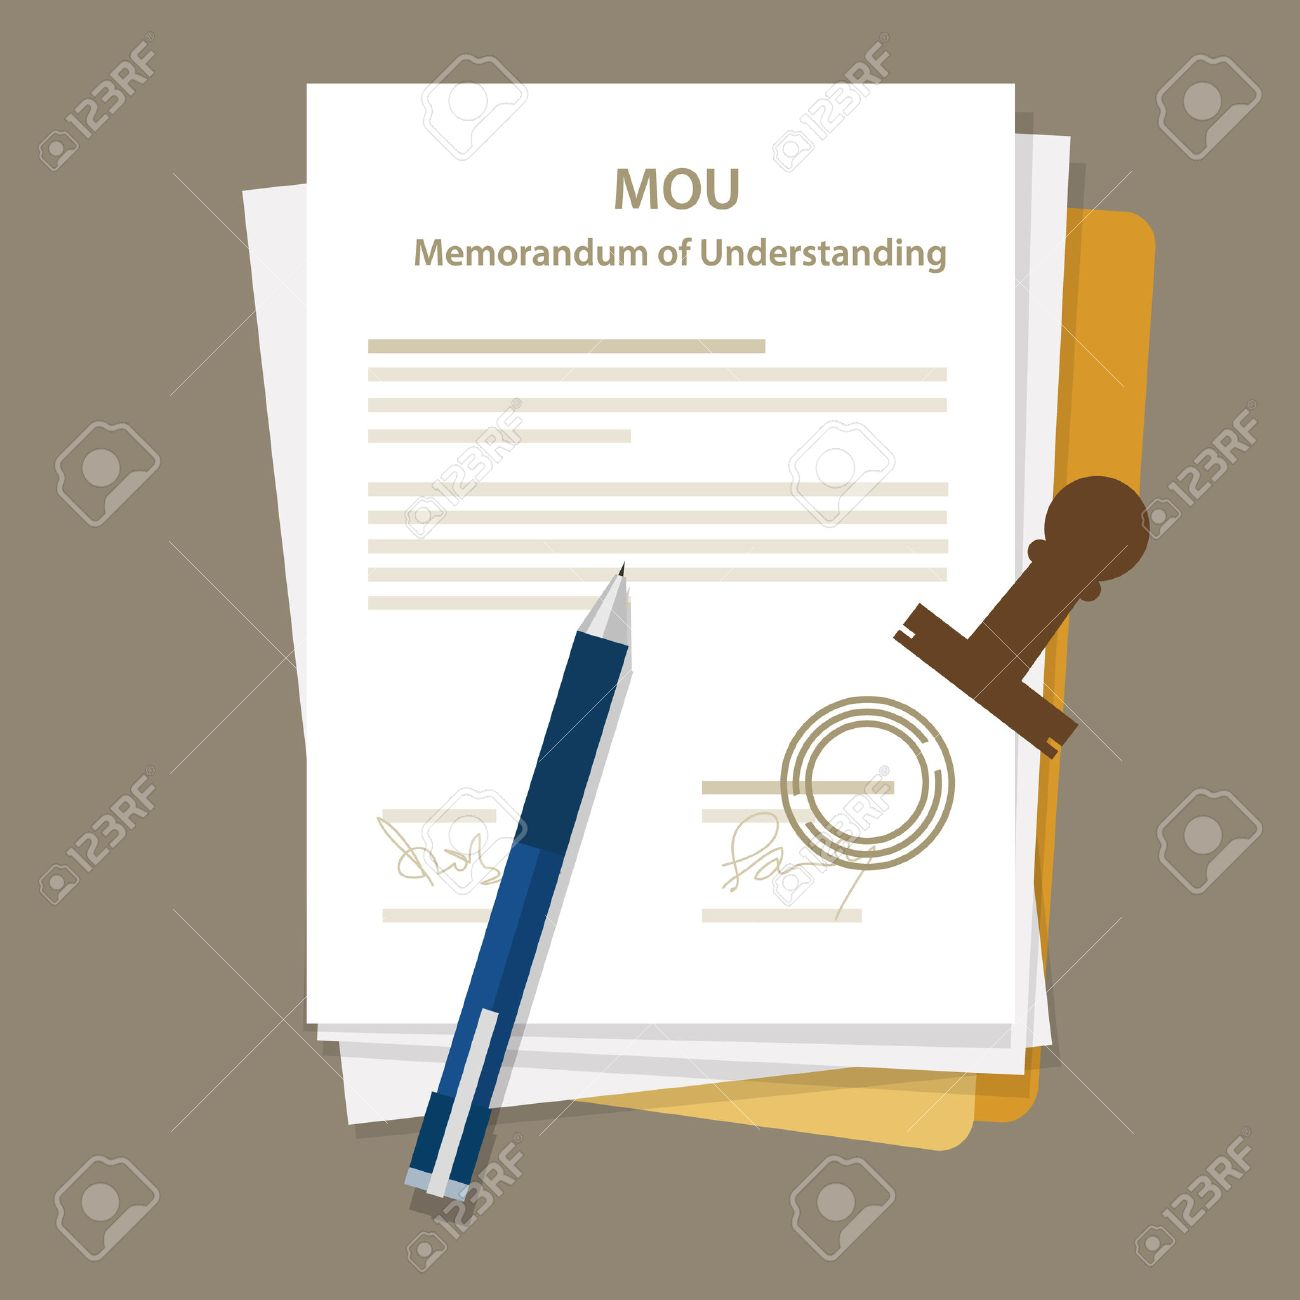 Mou Memorandum Of Understanding Legal Document Agreement Stamp Vector Stock